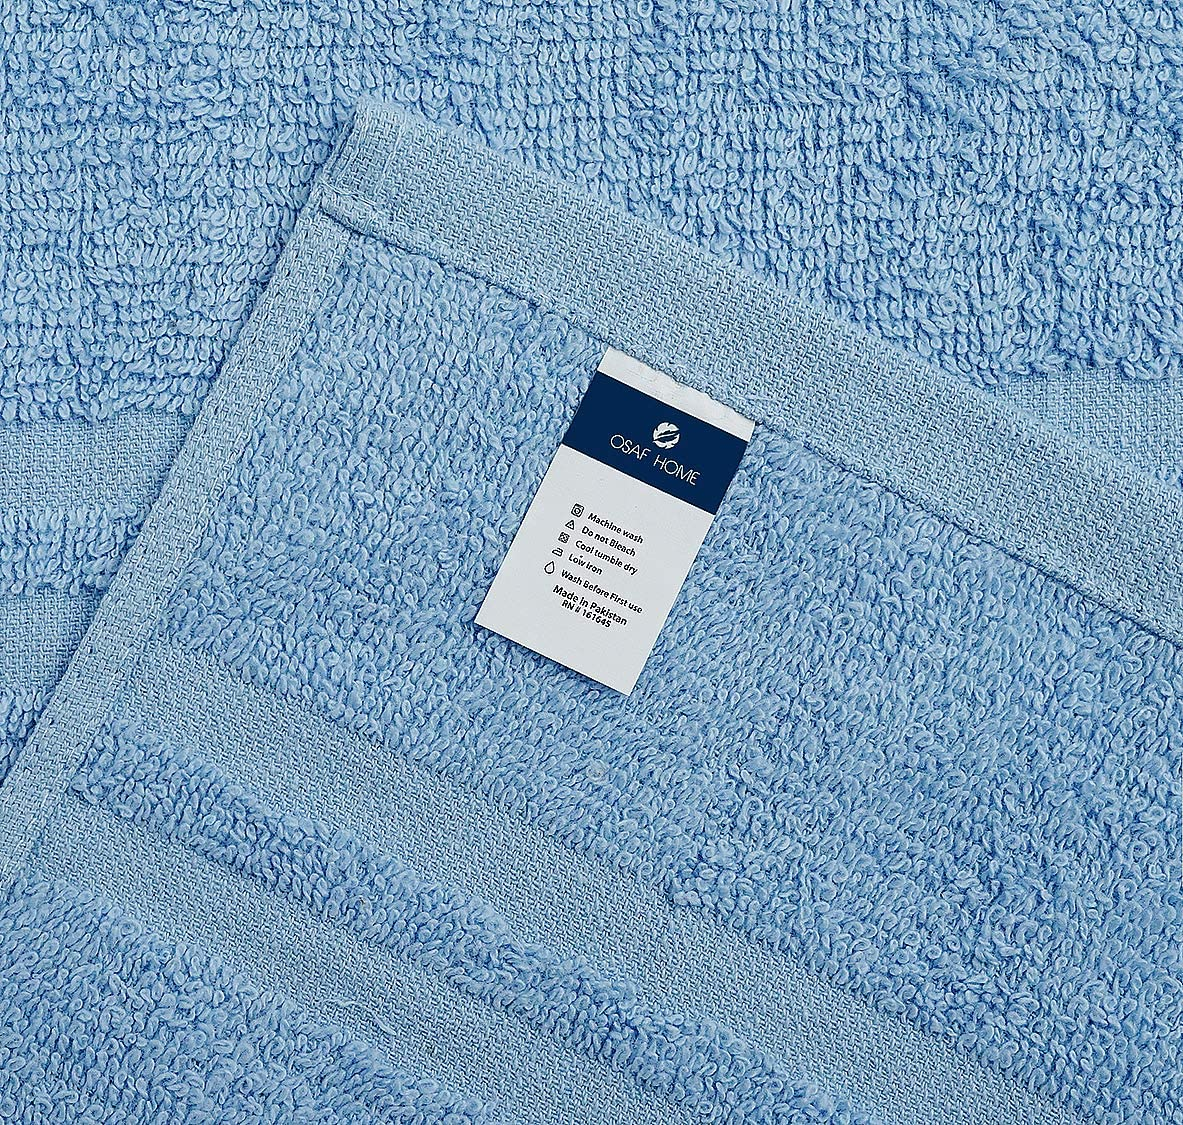 MEDICASCRUBS 100% Organic Cotton Bath Towels Set Pk 6-Ultra Soft Large Bath Towel- Blue Bath Towel Set-Highly Absorbent Daily Usage Bath Towel-Ideal for Pool Home Gym Spa Hotel-Bath Towel Set 22 x 44: Home & Kitchen